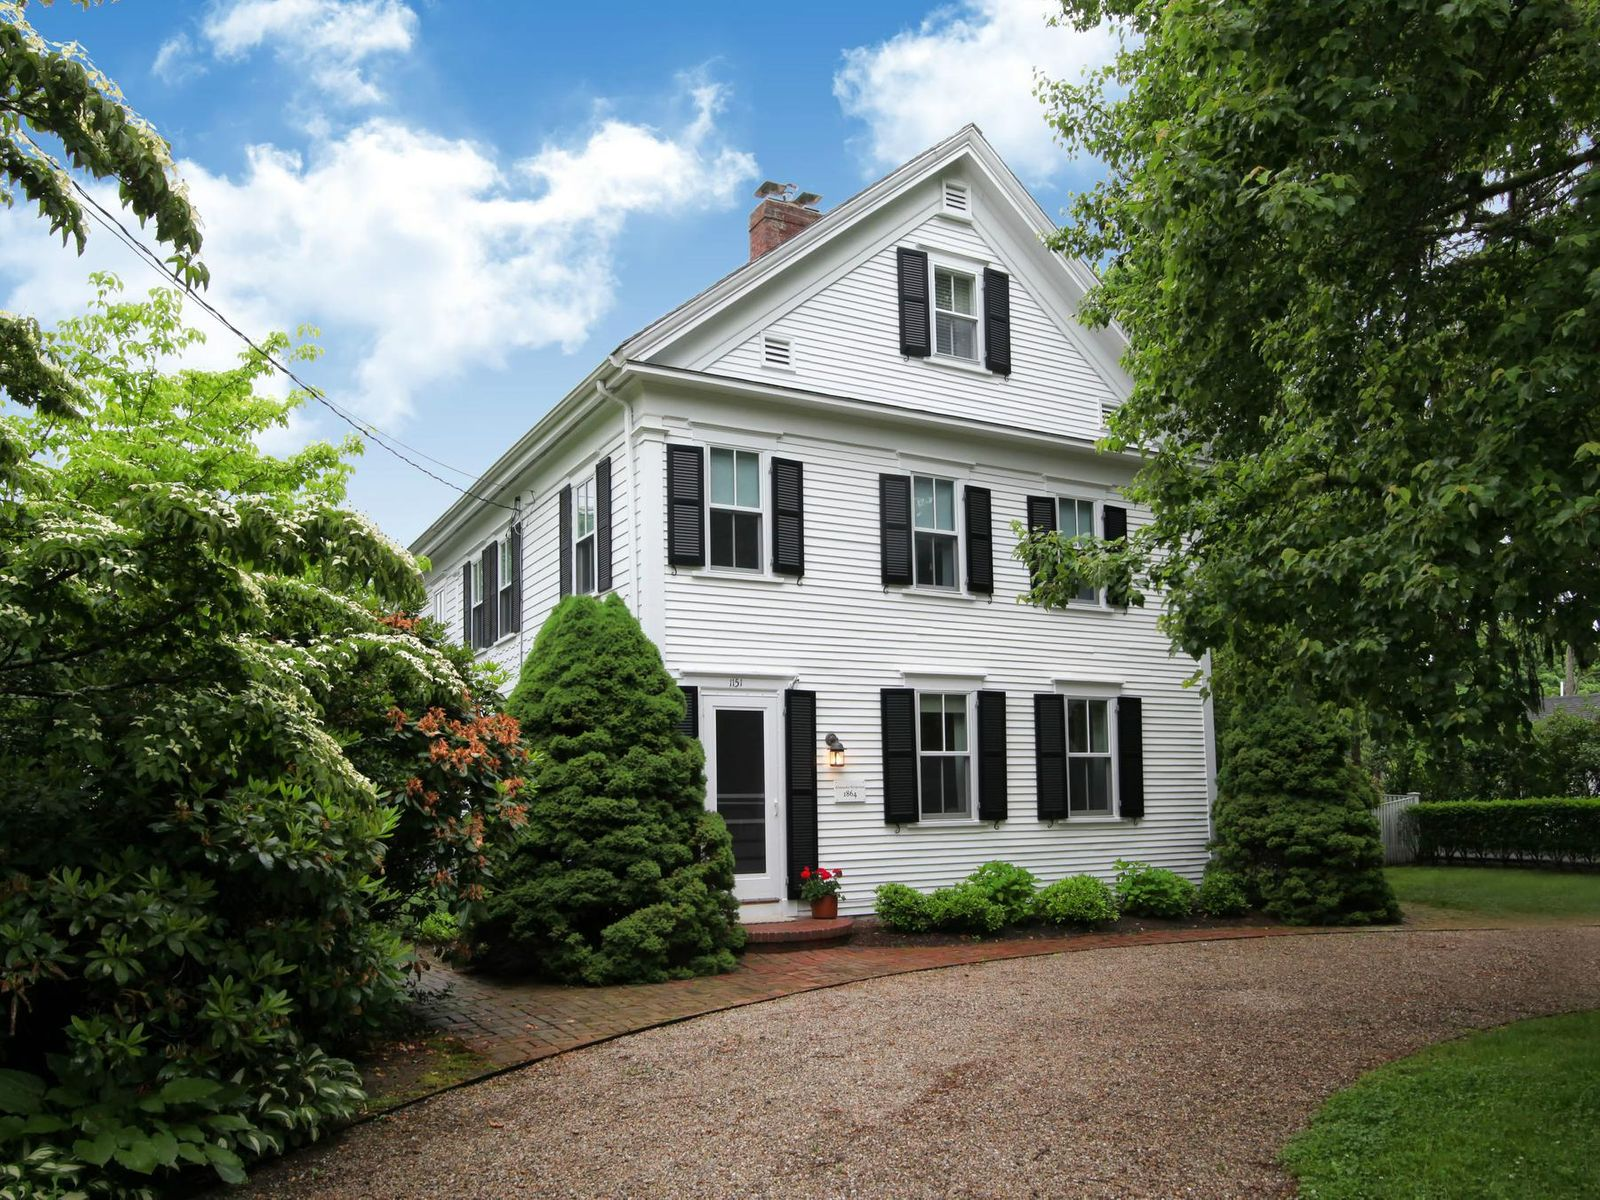 Charming Cotuit Village Antique Colonial, Cotuit MA Single Family Home - Cape Cod Real Estate